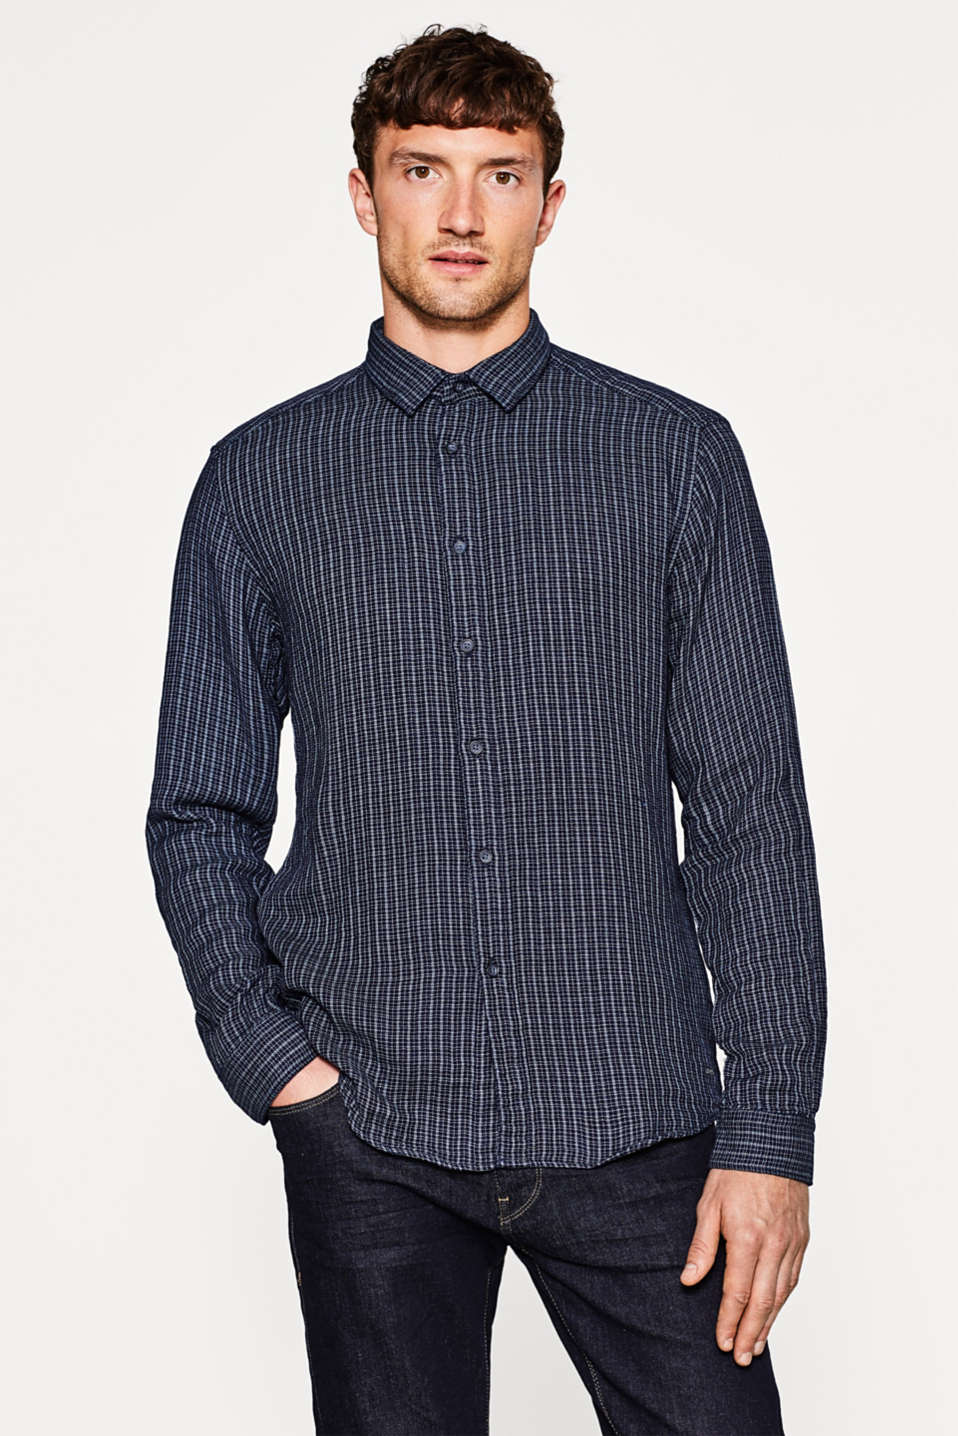 Esprit - Prince of Wales check shirt in 100% cotton